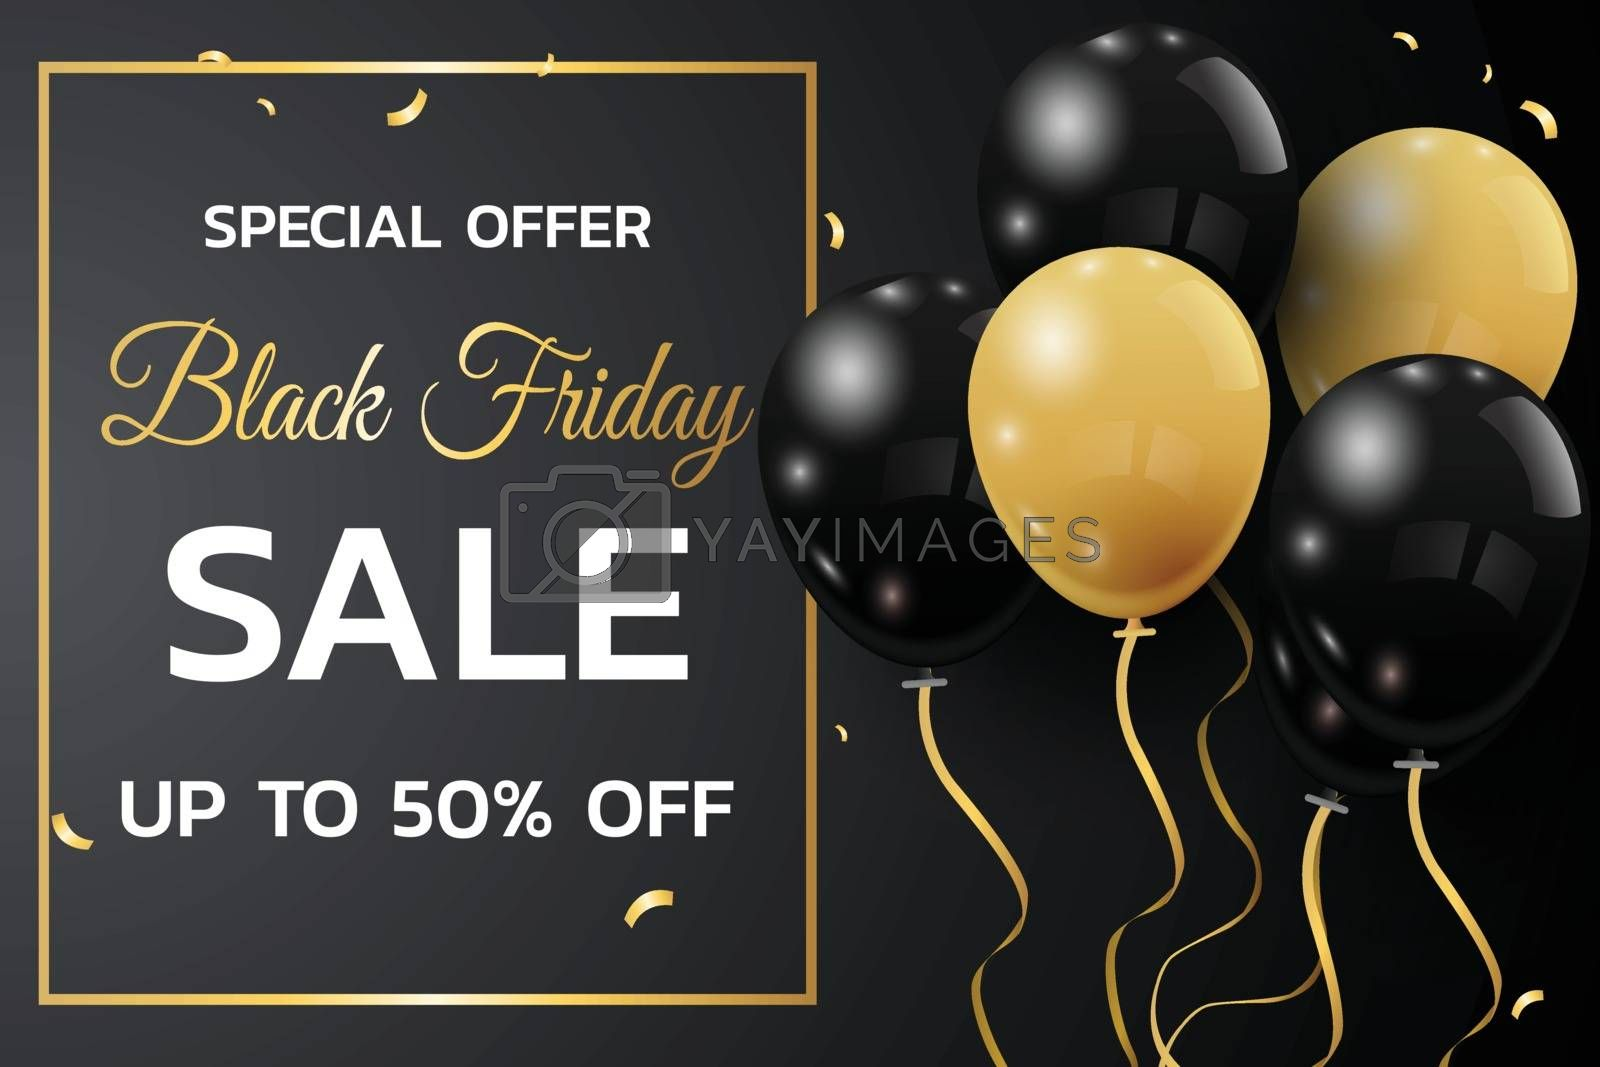 Black Friday Sale Poster with Shiny Balloons on Black Background with Square Frame.